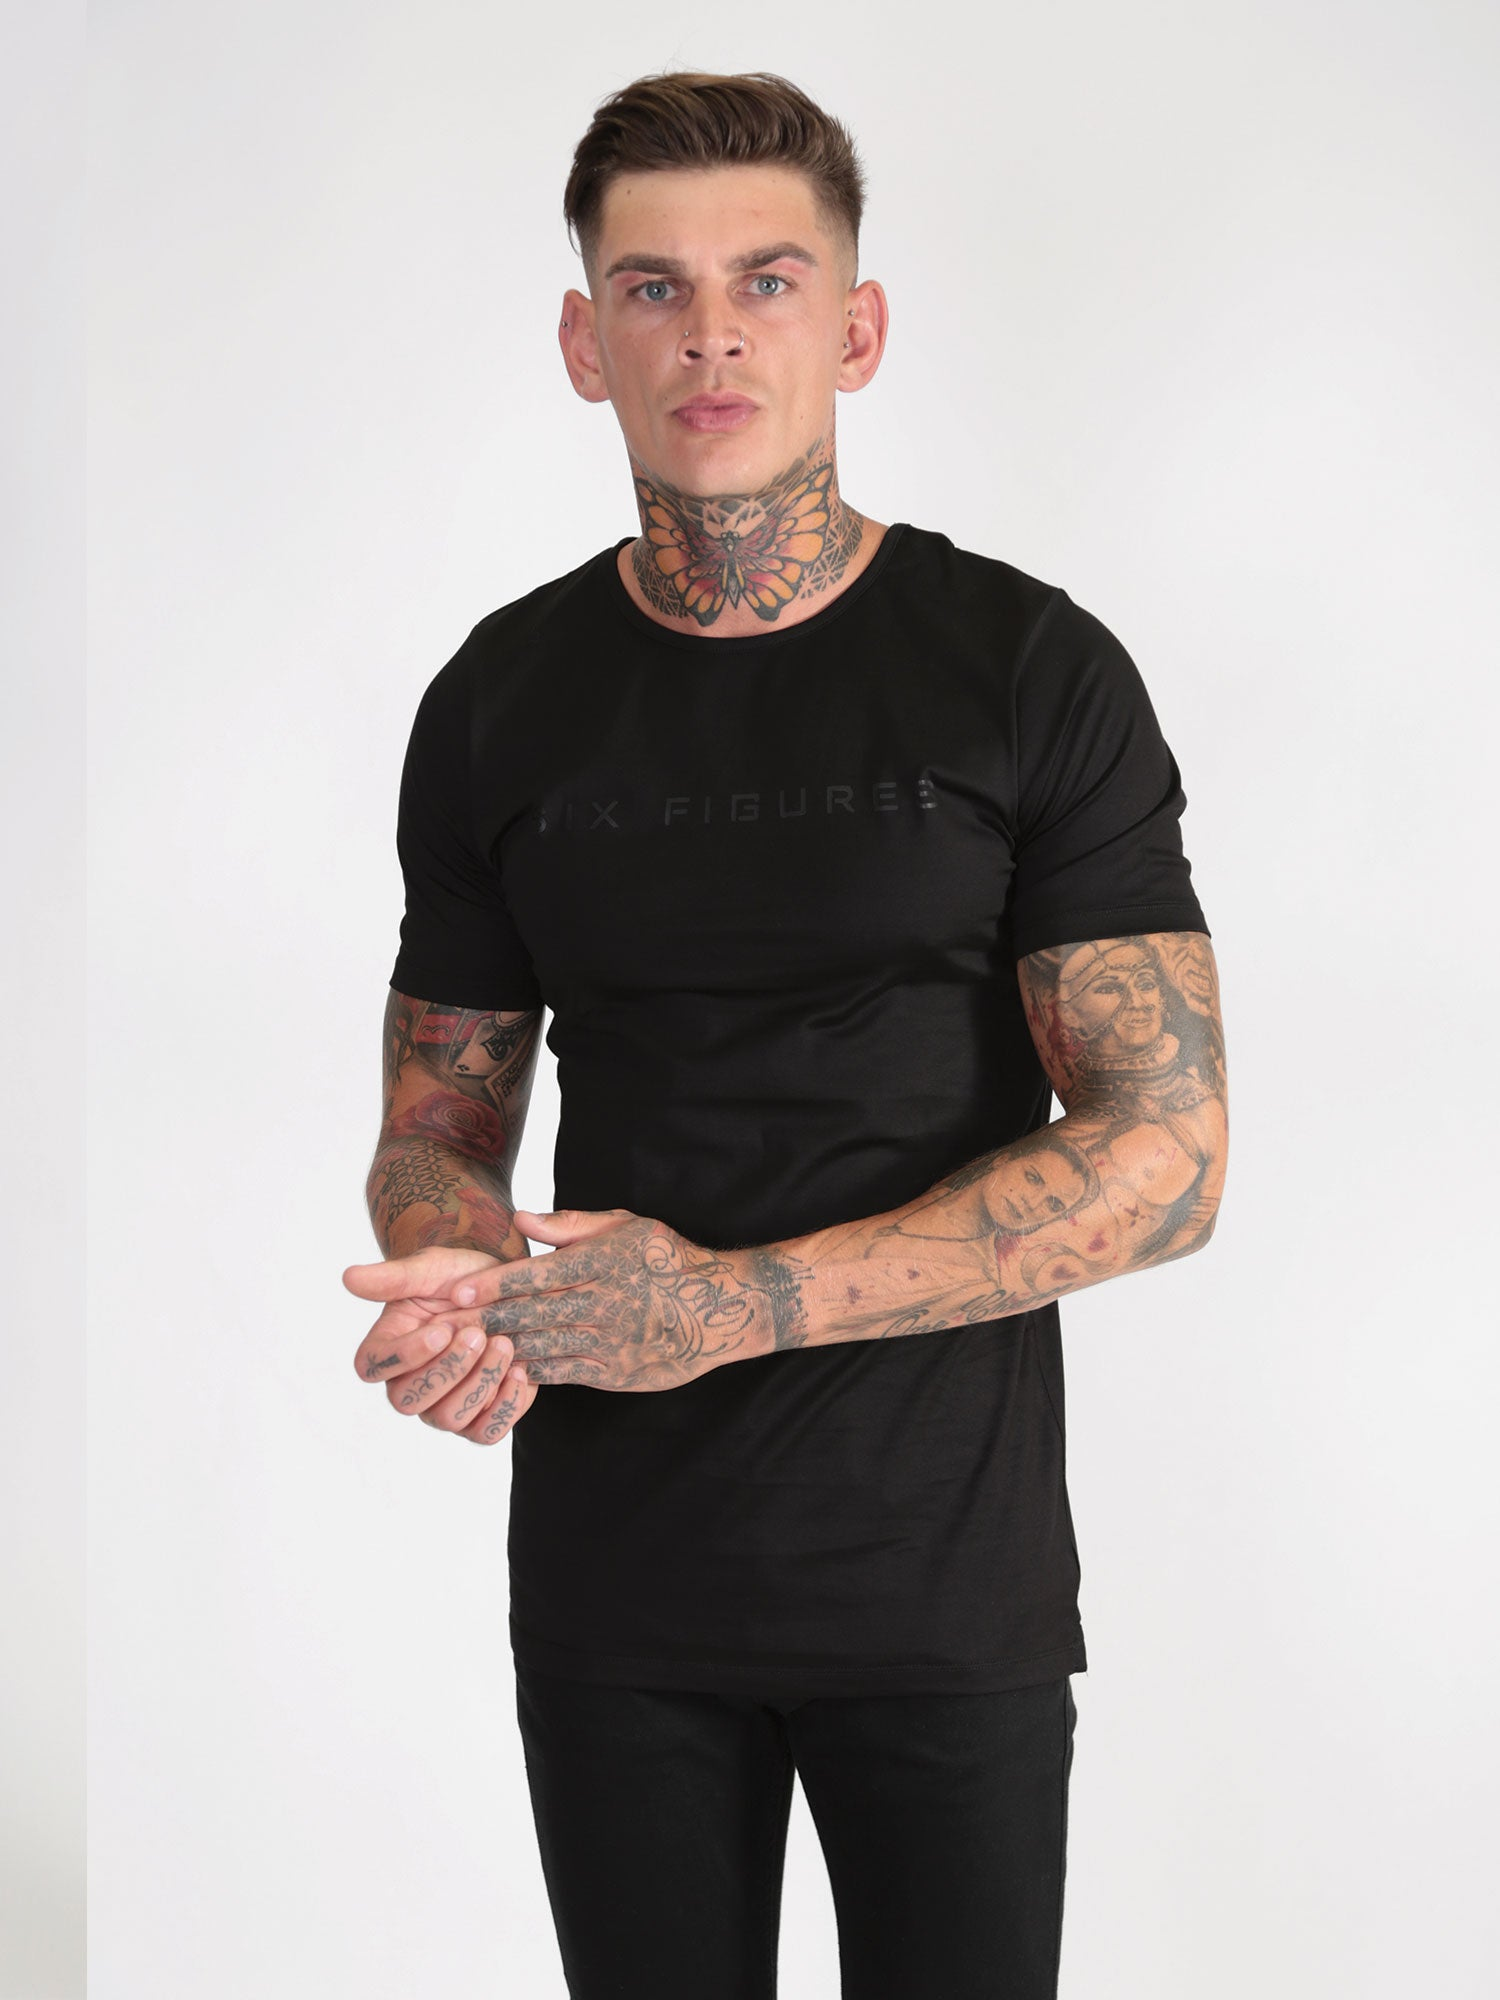 'Six Figures' T-Shirt - Black